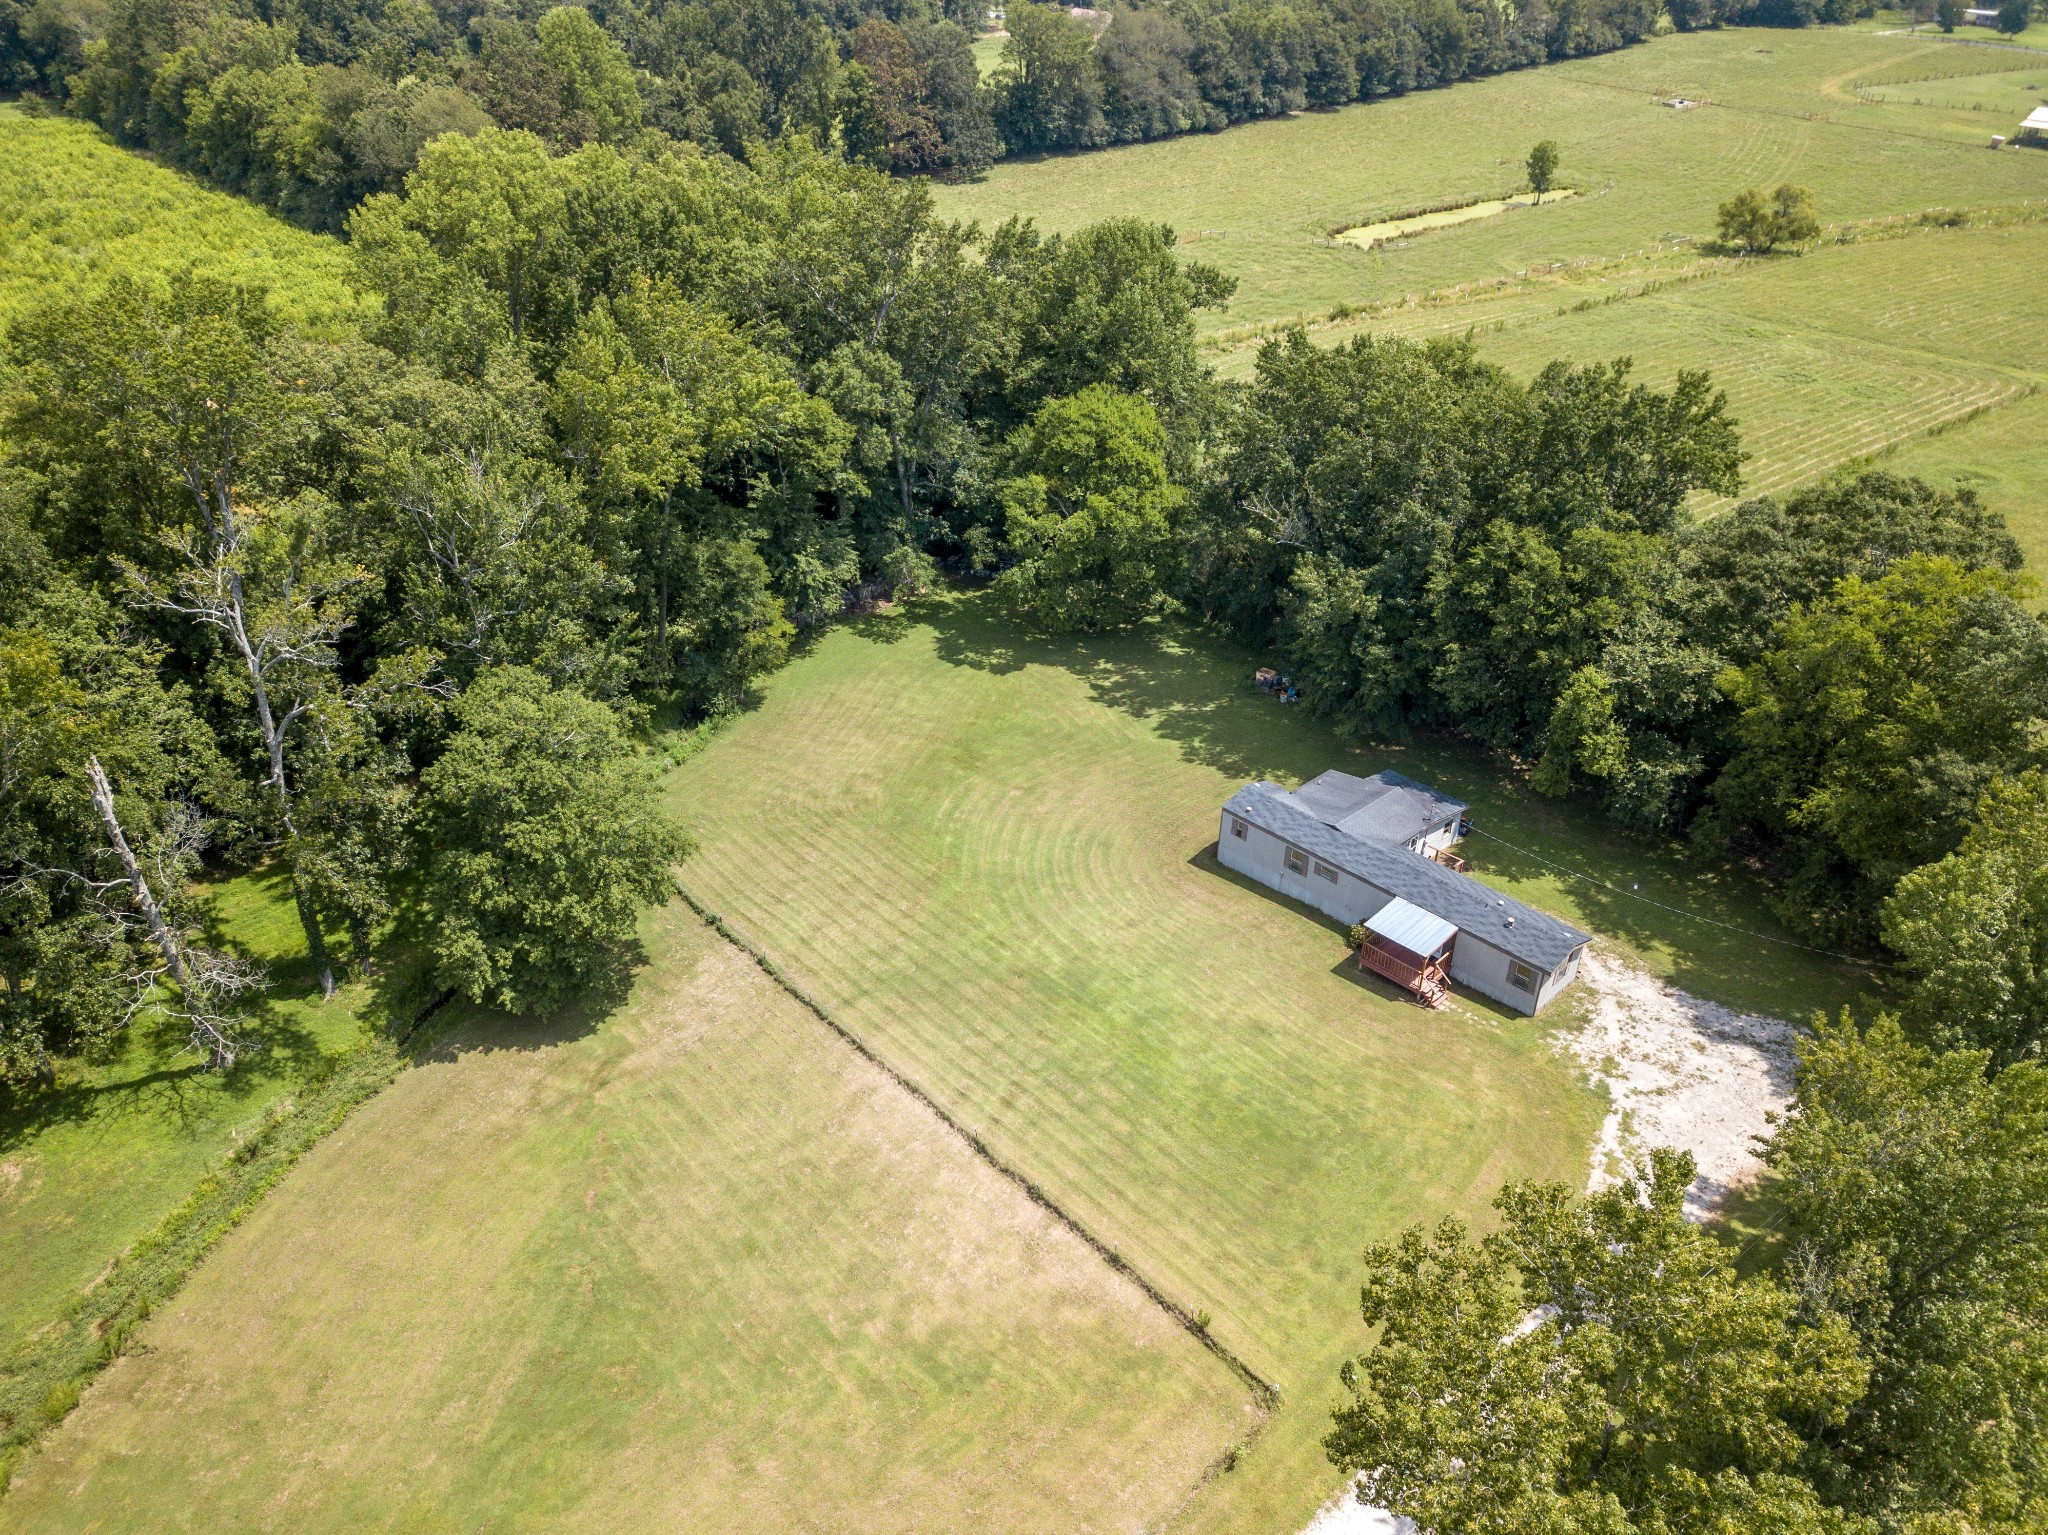 628 Oliver Smith Rd lot 6, Flintville, TN 37335 - Flintville, TN real estate listing